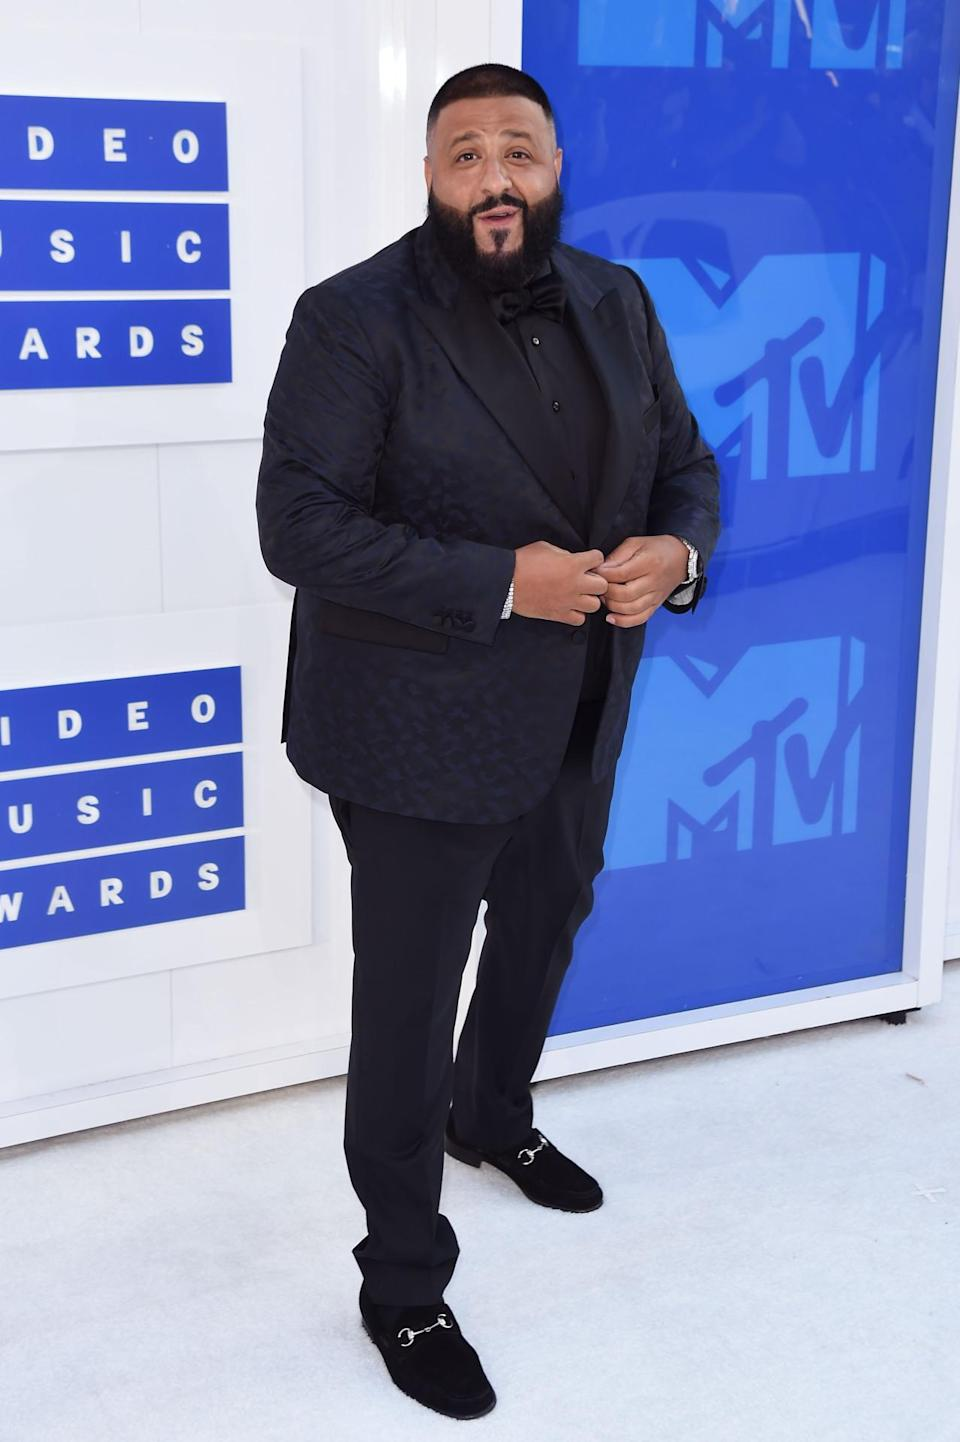 """<p>DJ Khaled, whose album <a href=""""https://www.yahoo.com/katiecouric/major-key-alert-dj-khaled-talks-his-latest-album-snapchat-and-beyonce-191223451.html"""" data-ylk=""""slk:Major Key;outcm:mb_qualified_link;_E:mb_qualified_link;ct:story;"""" class=""""link rapid-noclick-resp yahoo-link""""><i>Major Key</i></a> is a, well, major hit, hosted the pre-show wearing a navy blue giraffe print suit. While special because of its flair, it has an even greater significance considering that Tony Robbins, the motivational speaker and informercial personality, set the performer up with his tailor, who custom made it. <i>(Photo: Getty Images)</i></p>"""